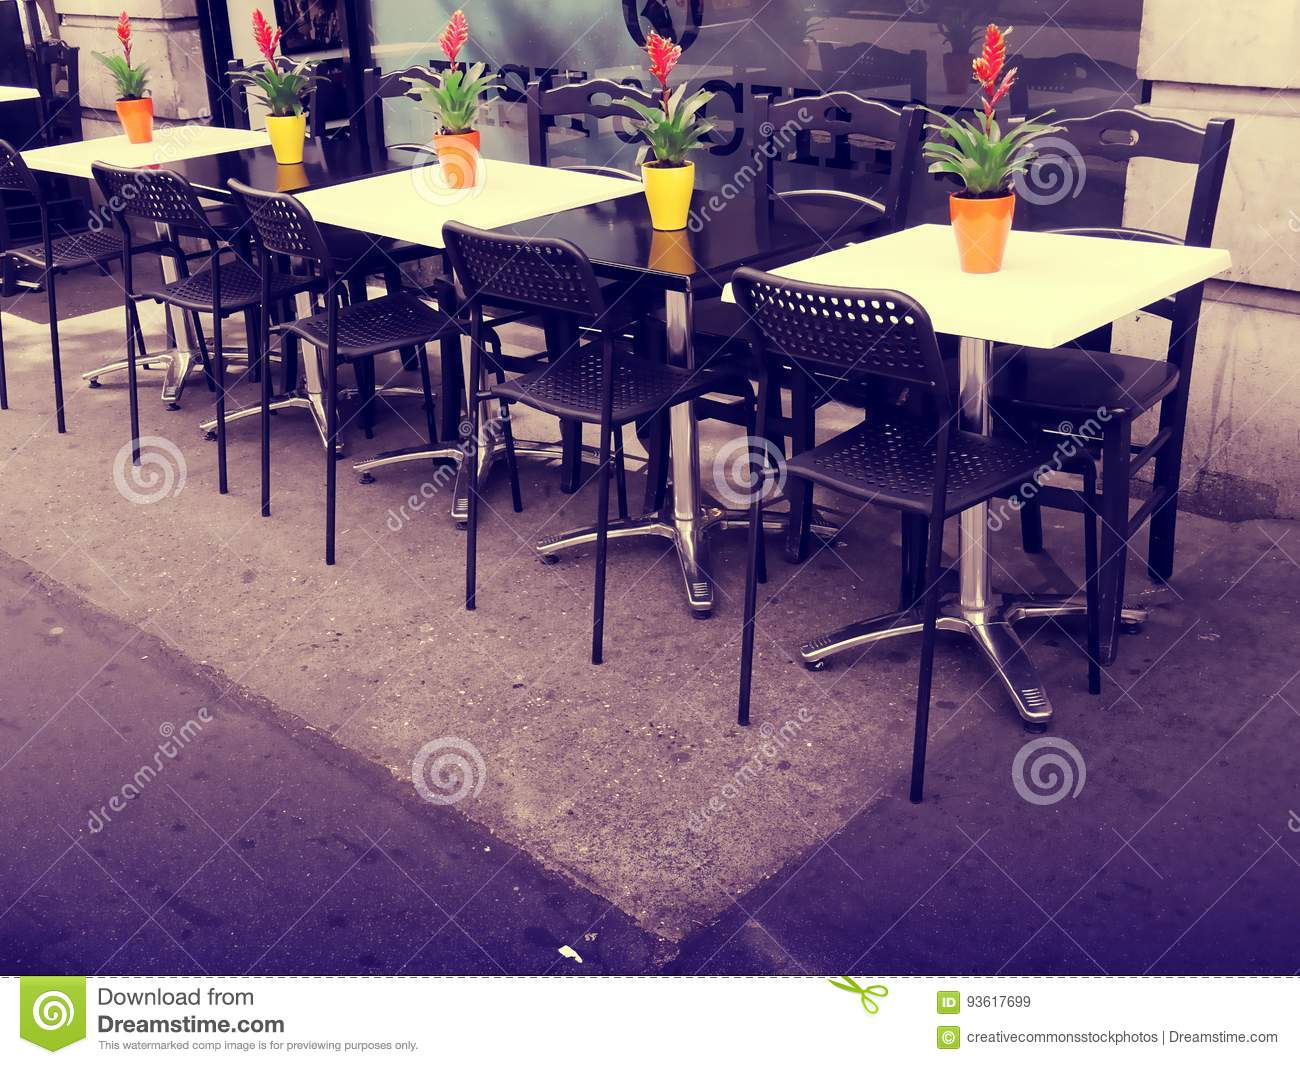 Outdoor Tables In Cafe Public Domain Image Outdoor Tables In Cafe Free Public Domain